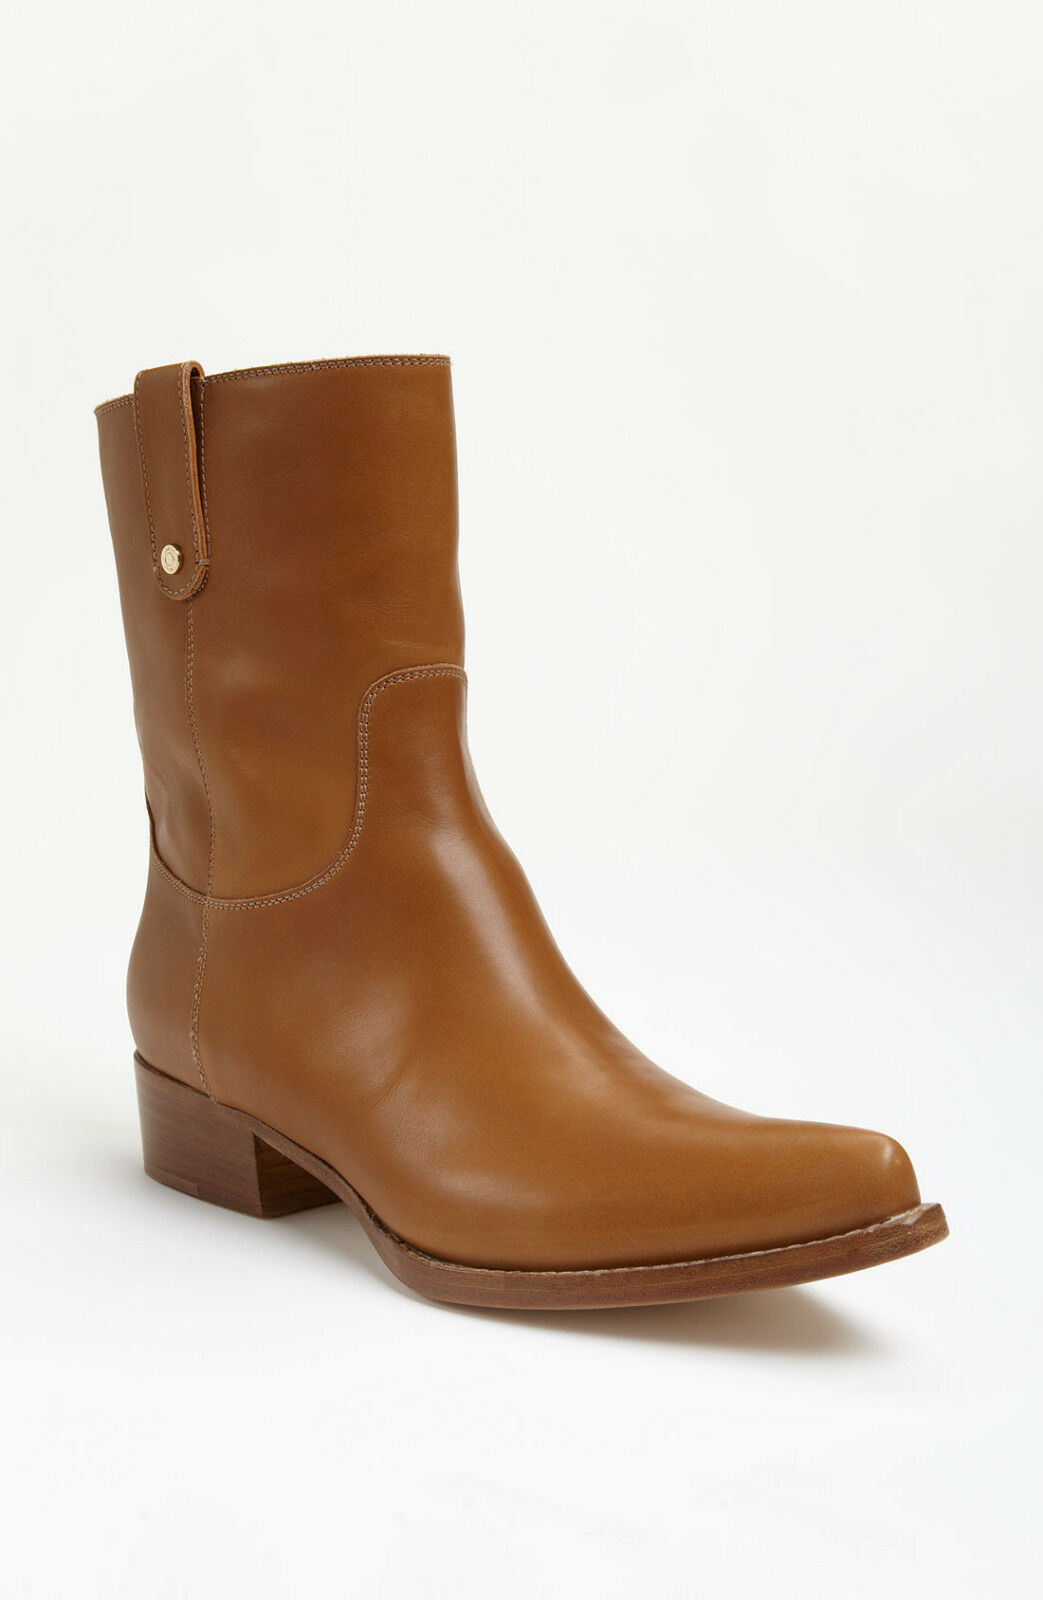 Jimmy Choo BORDER Western Mid Calf Brown Tan Leather Boots Booties Shoe 41 / 11